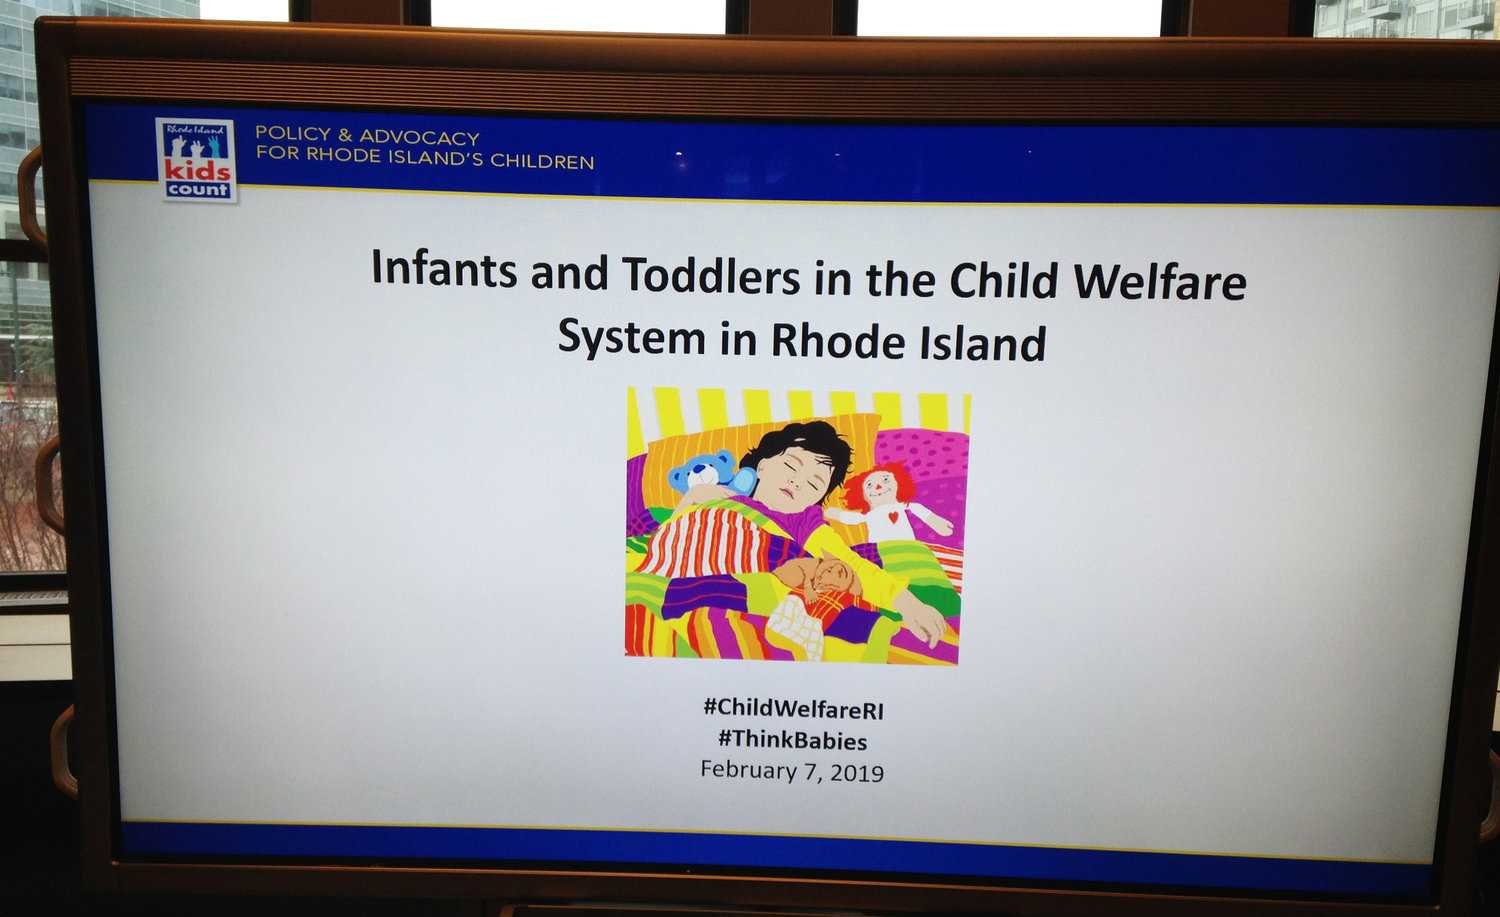 Rethinking assumptions around child neglect in RI